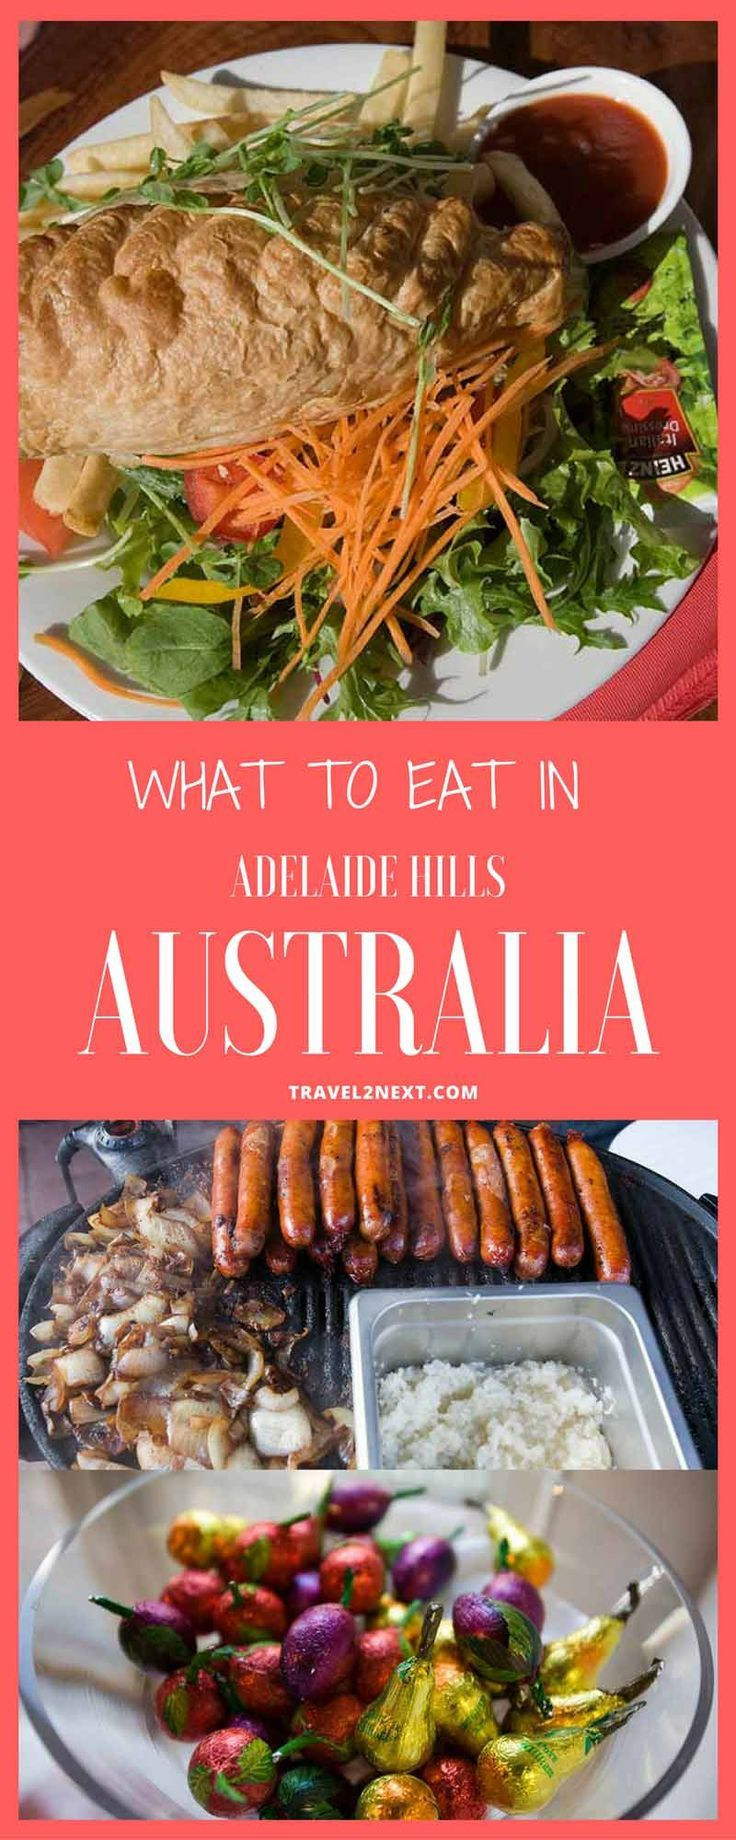 35 Amazing Things To Do In Adelaide Australia Travel Guide Adelaide South Australia Australia Travel